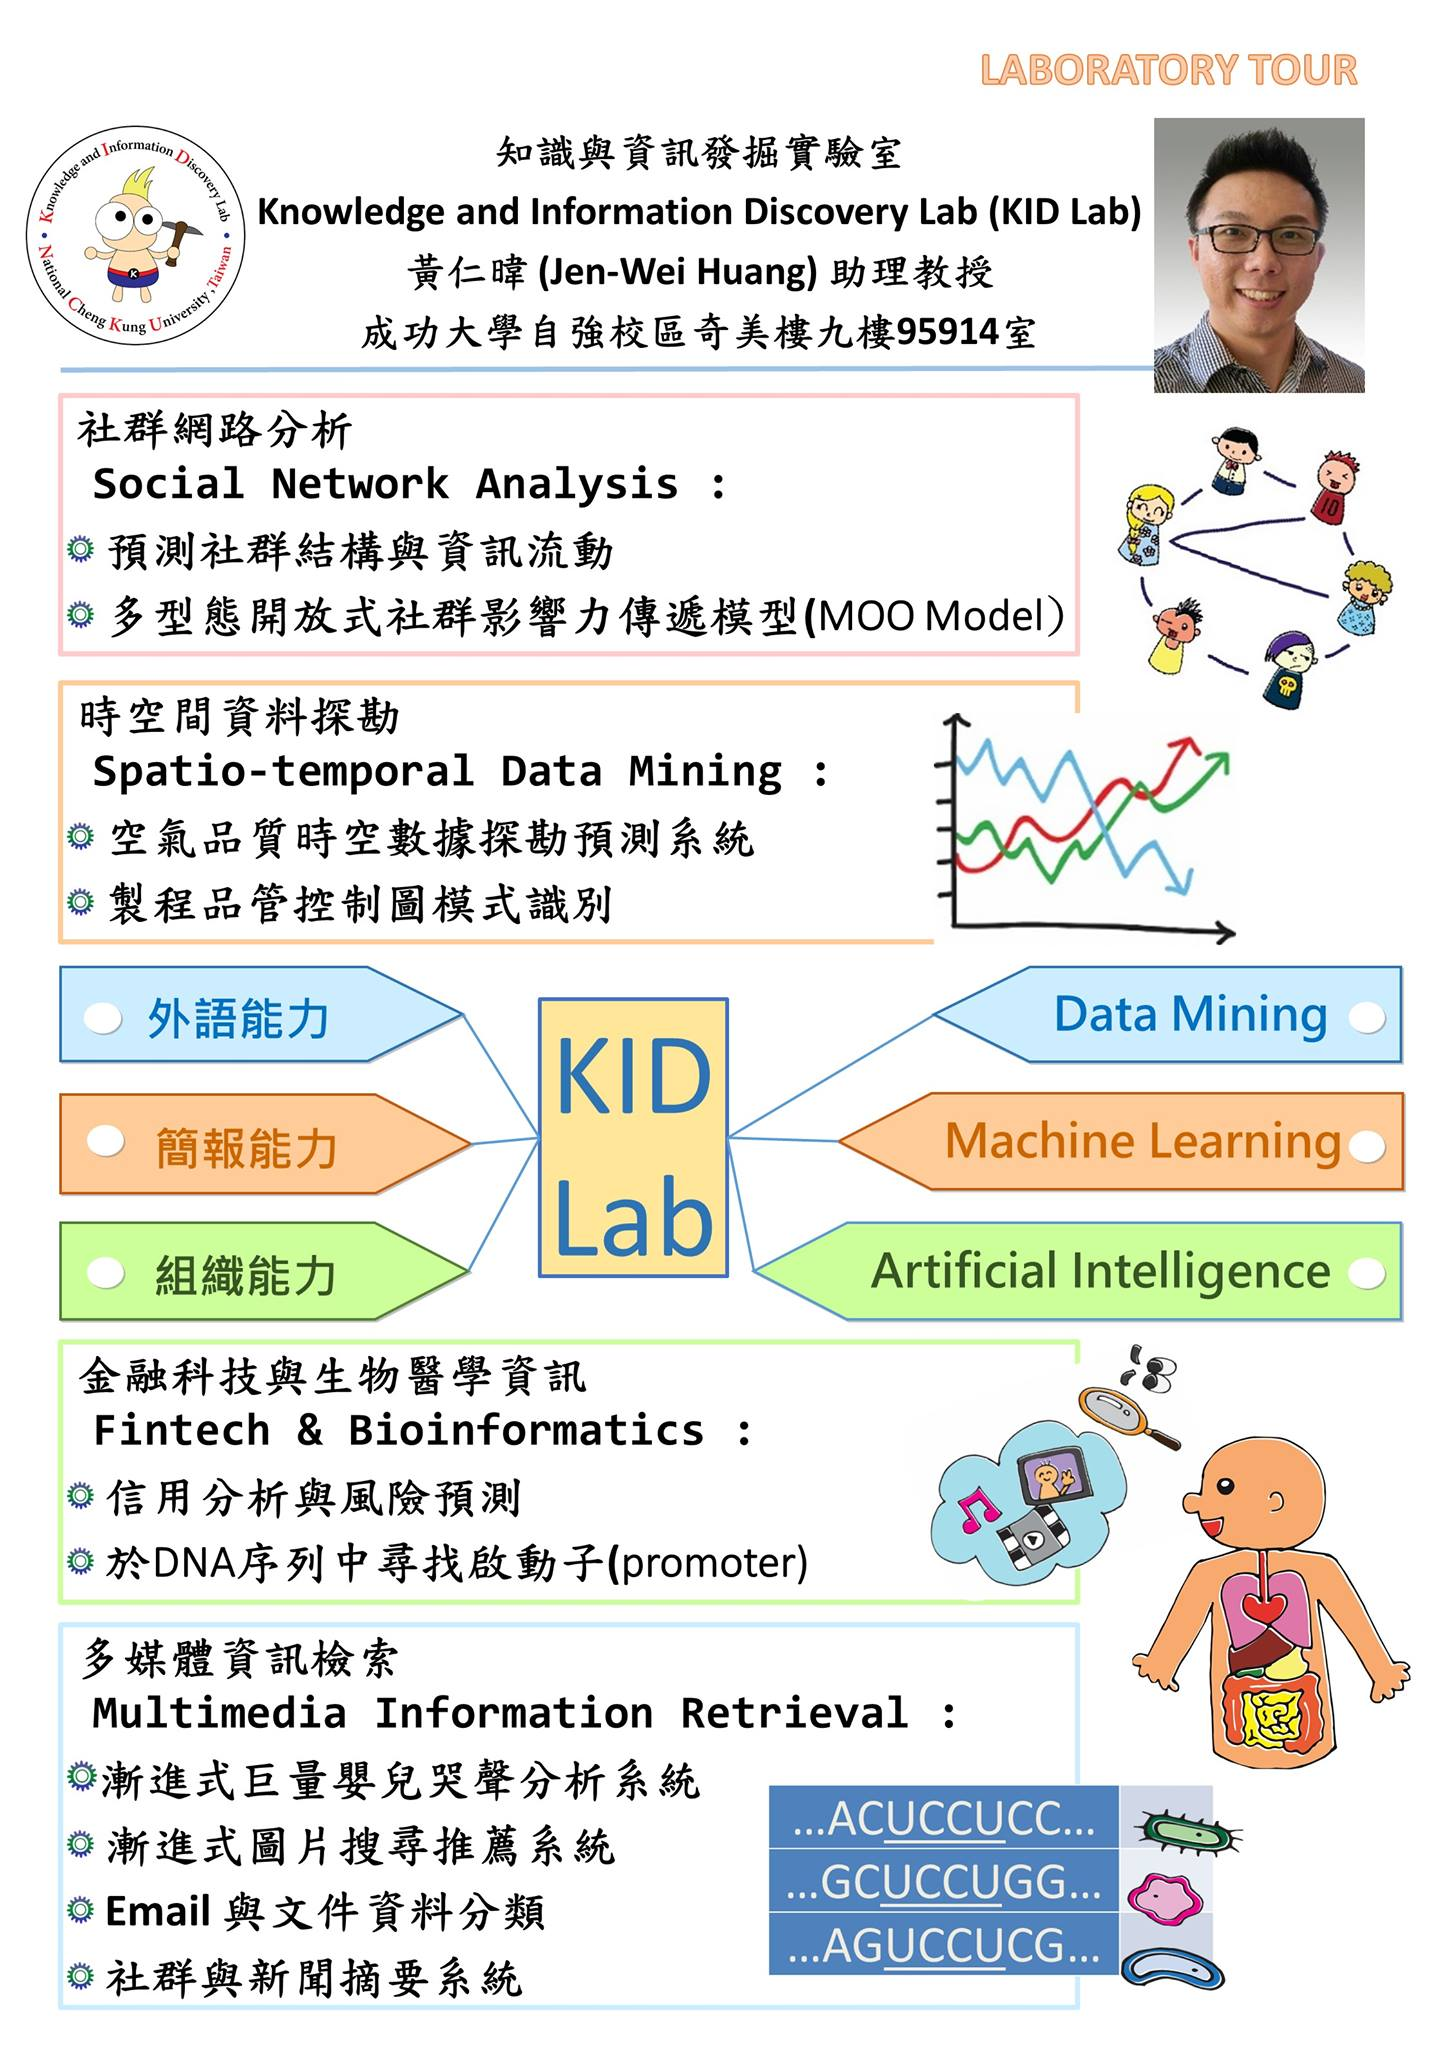 About KID Lab